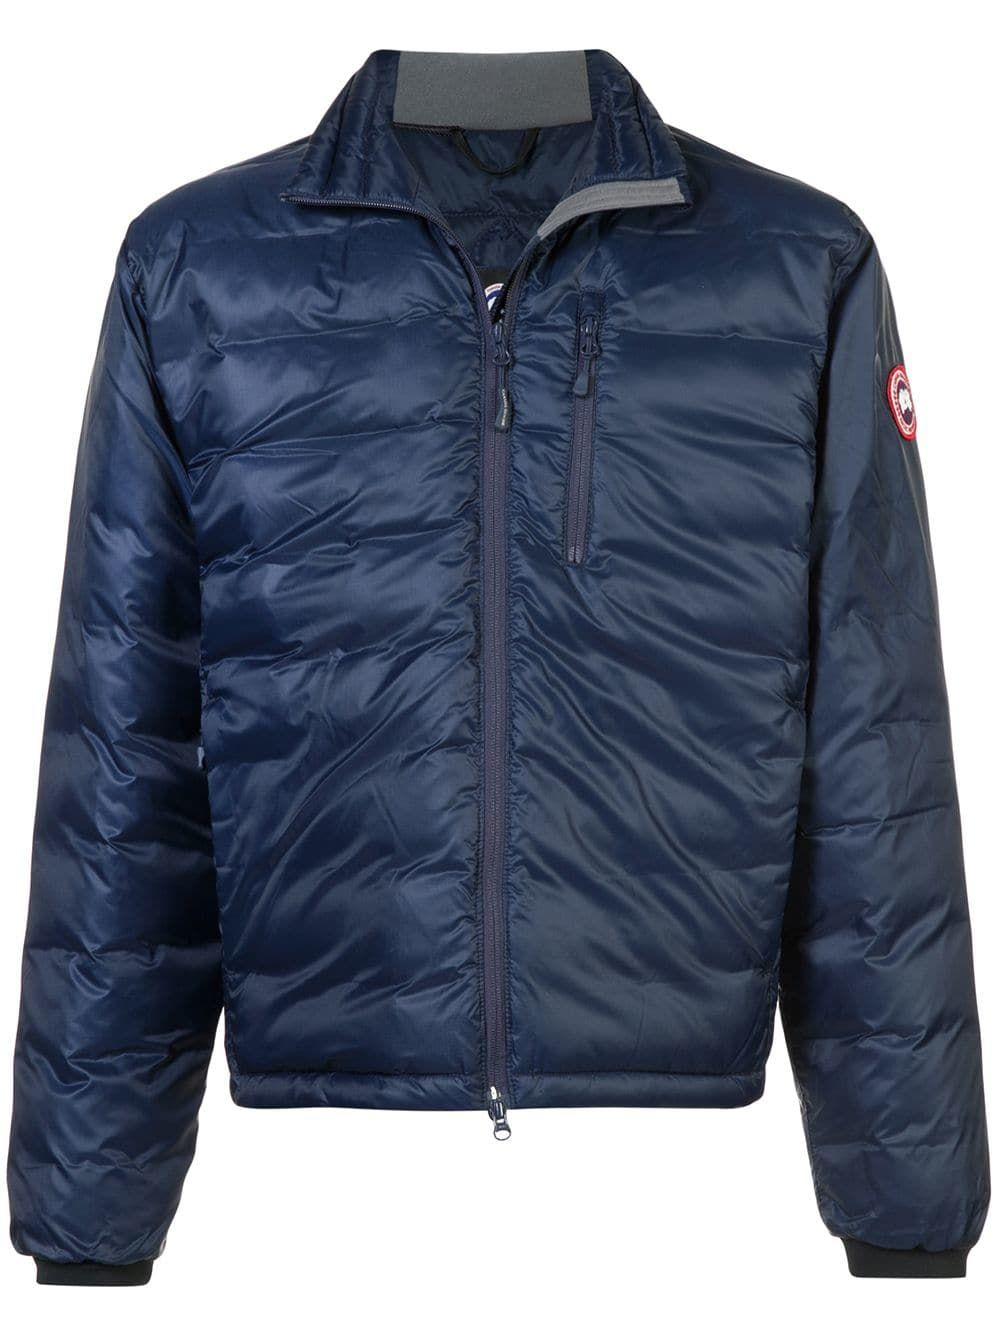 Lodge Jacket In Blue Jackets Canada Goose Mens Canada Goose